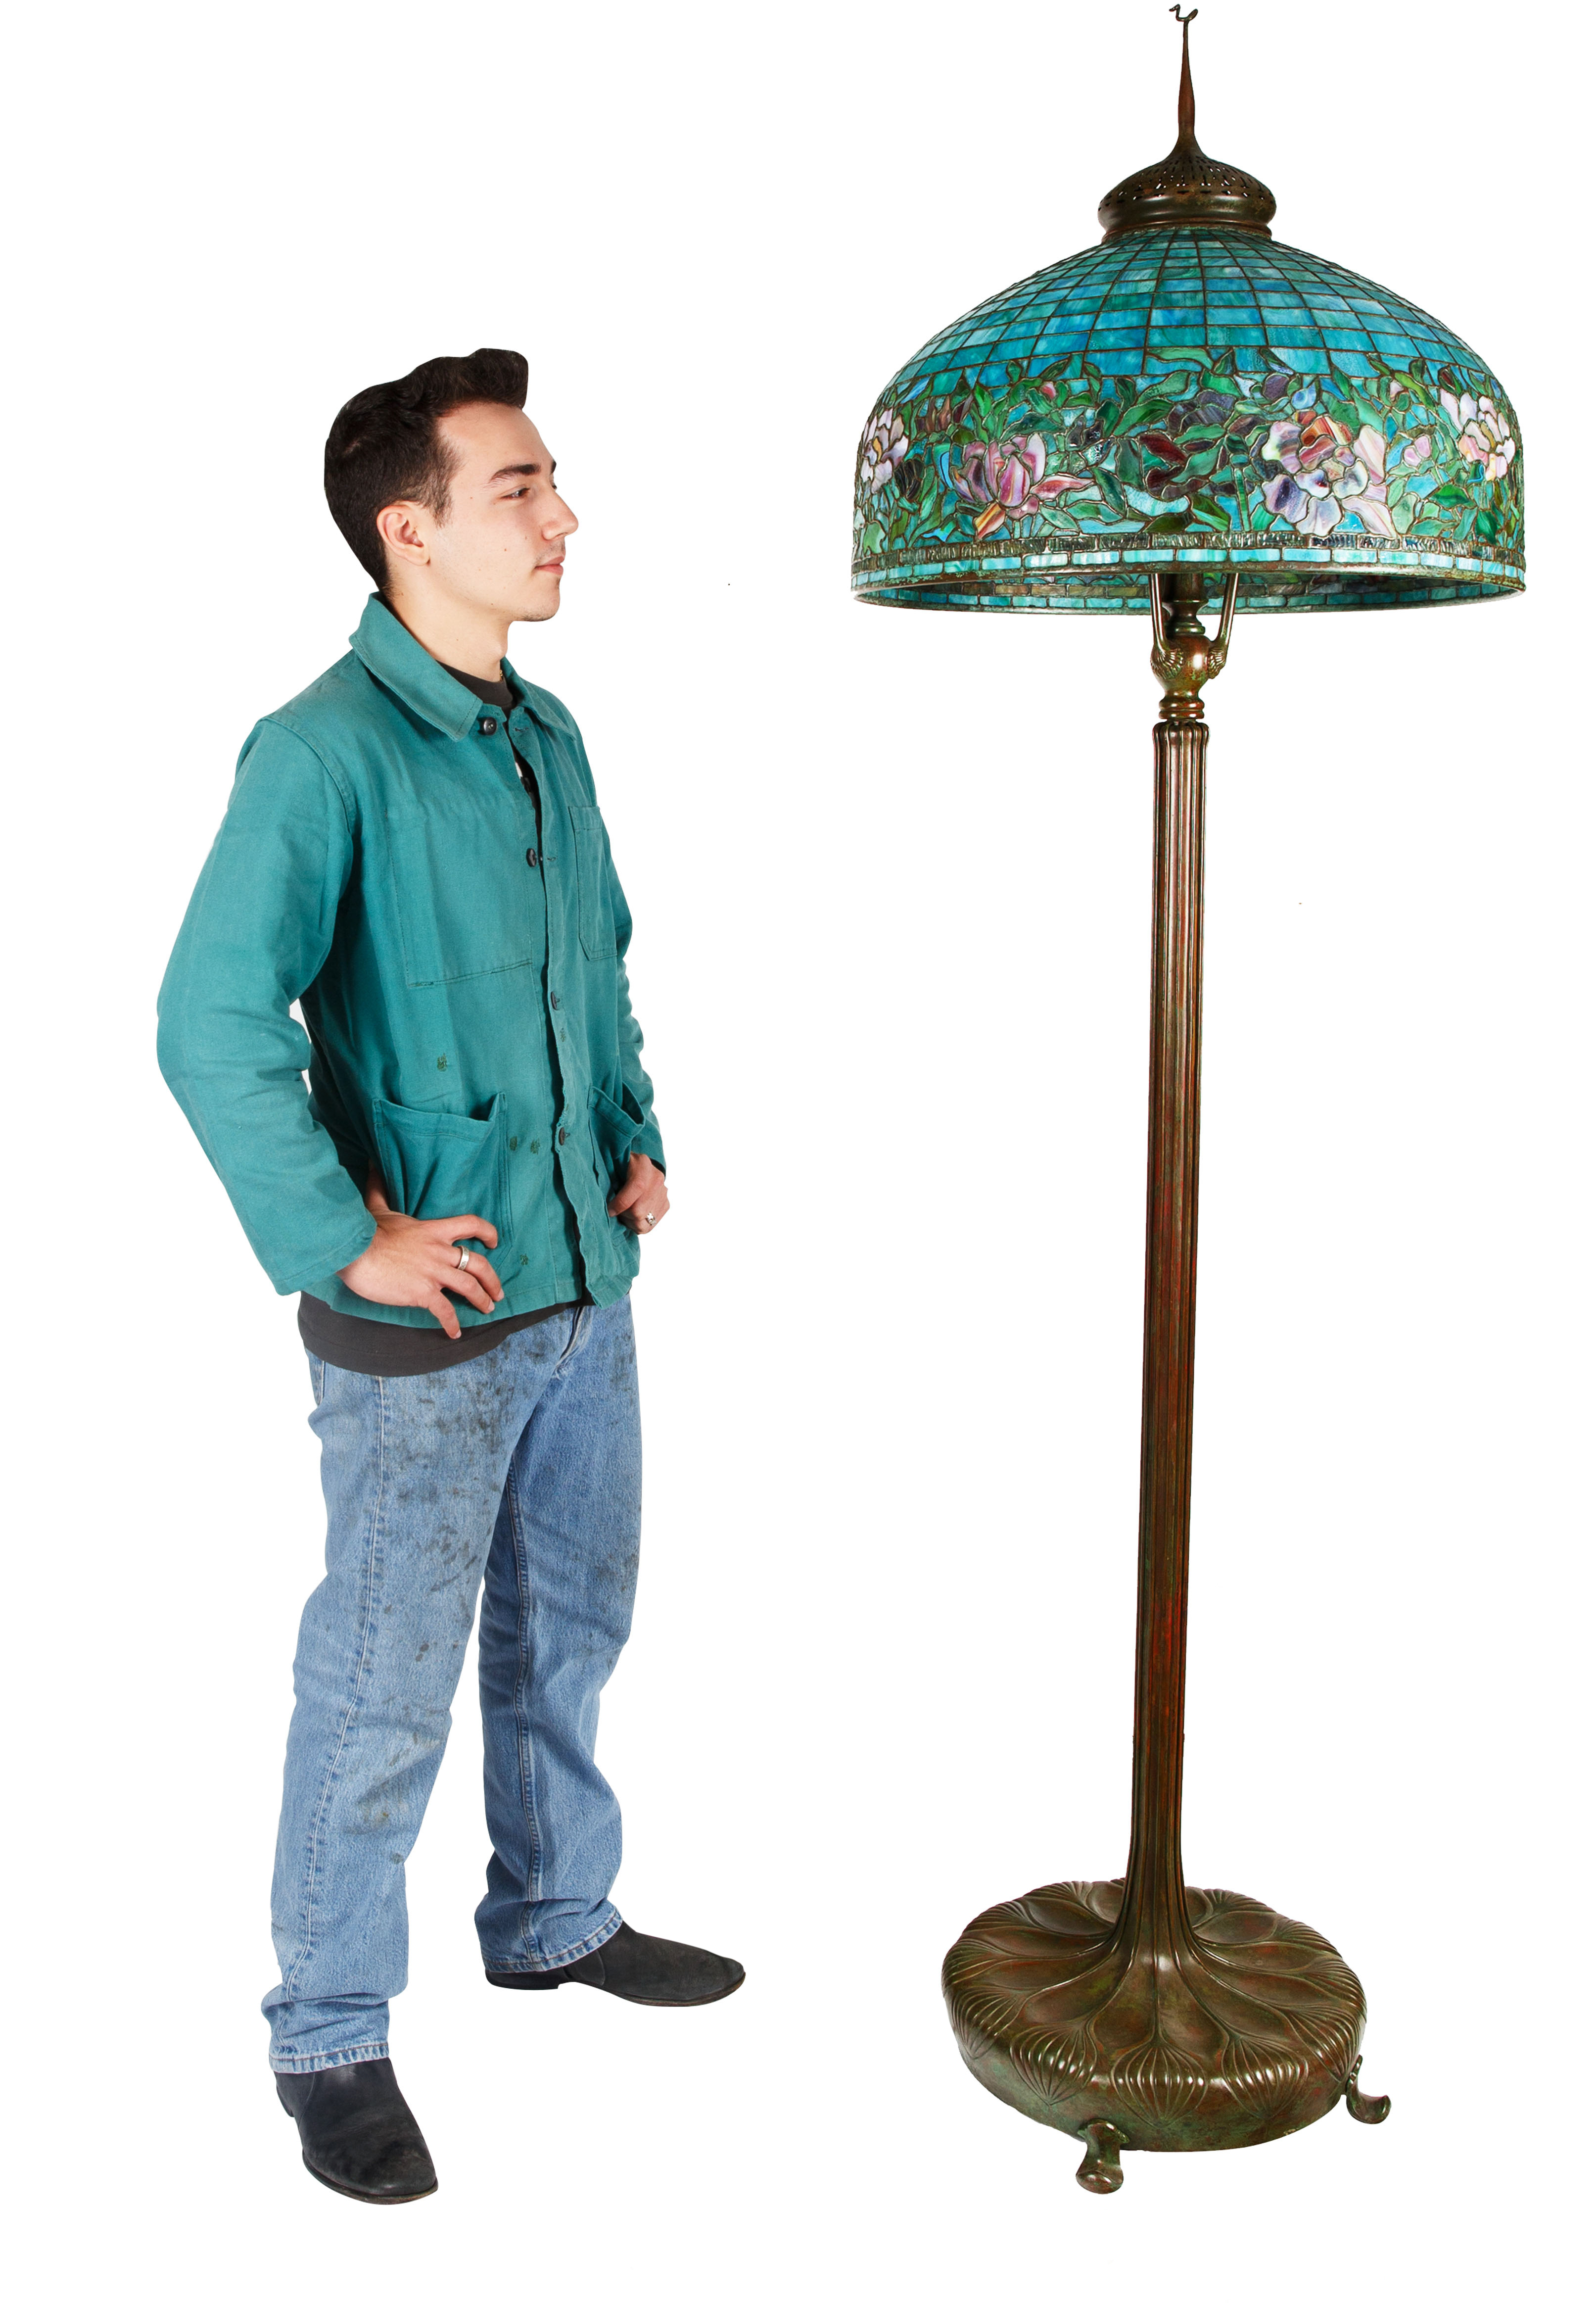 A MODERN TIFFANY & CO. STYLE STAINED GLASS 'PEONY' FLOOR LAMP - Image 5 of 5